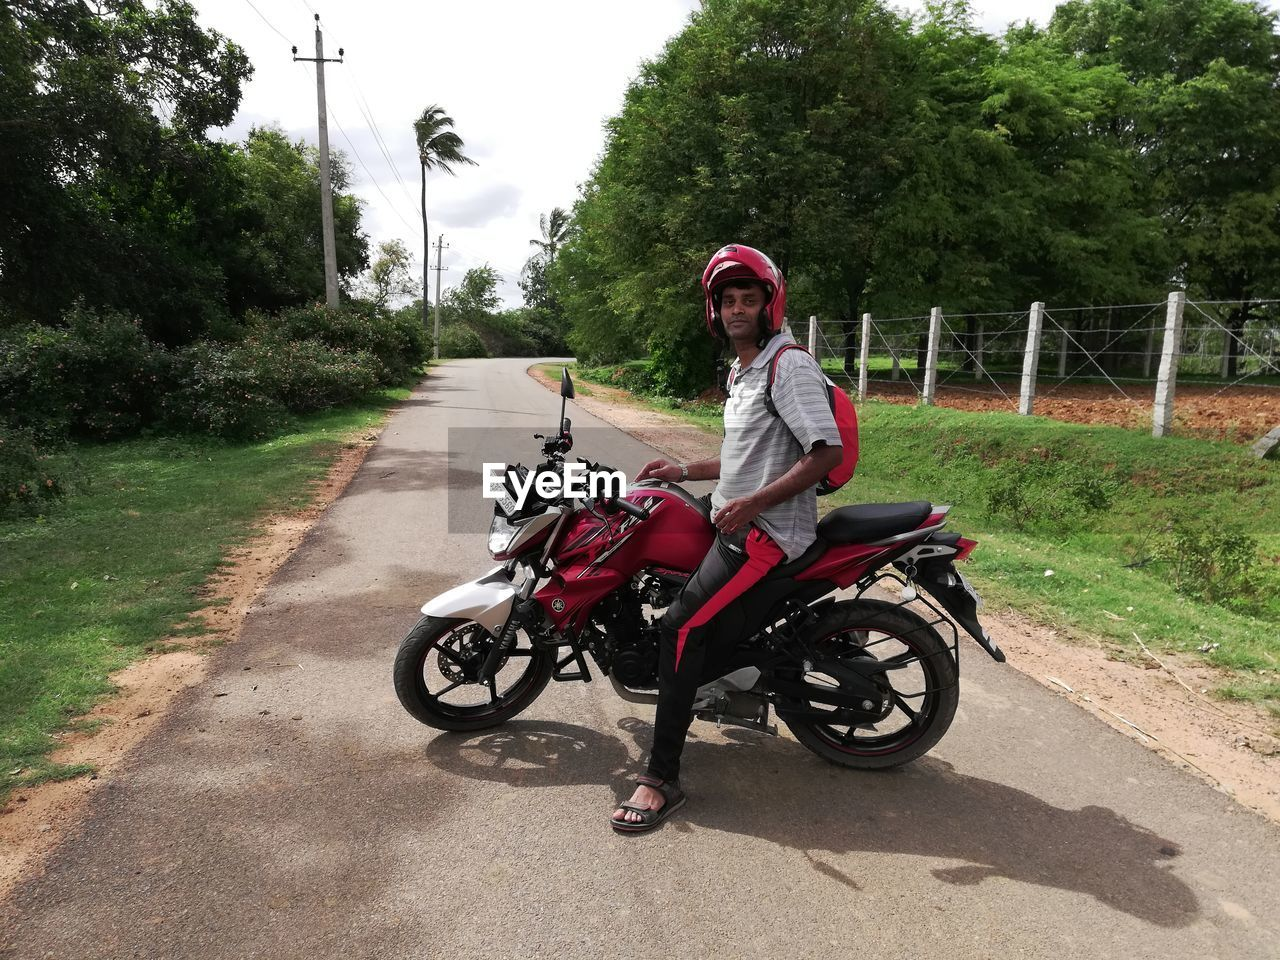 transportation, one person, real people, full length, mode of transportation, tree, road, leisure activity, plant, land vehicle, casual clothing, lifestyles, women, females, nature, helmet, day, ride, riding, outdoors